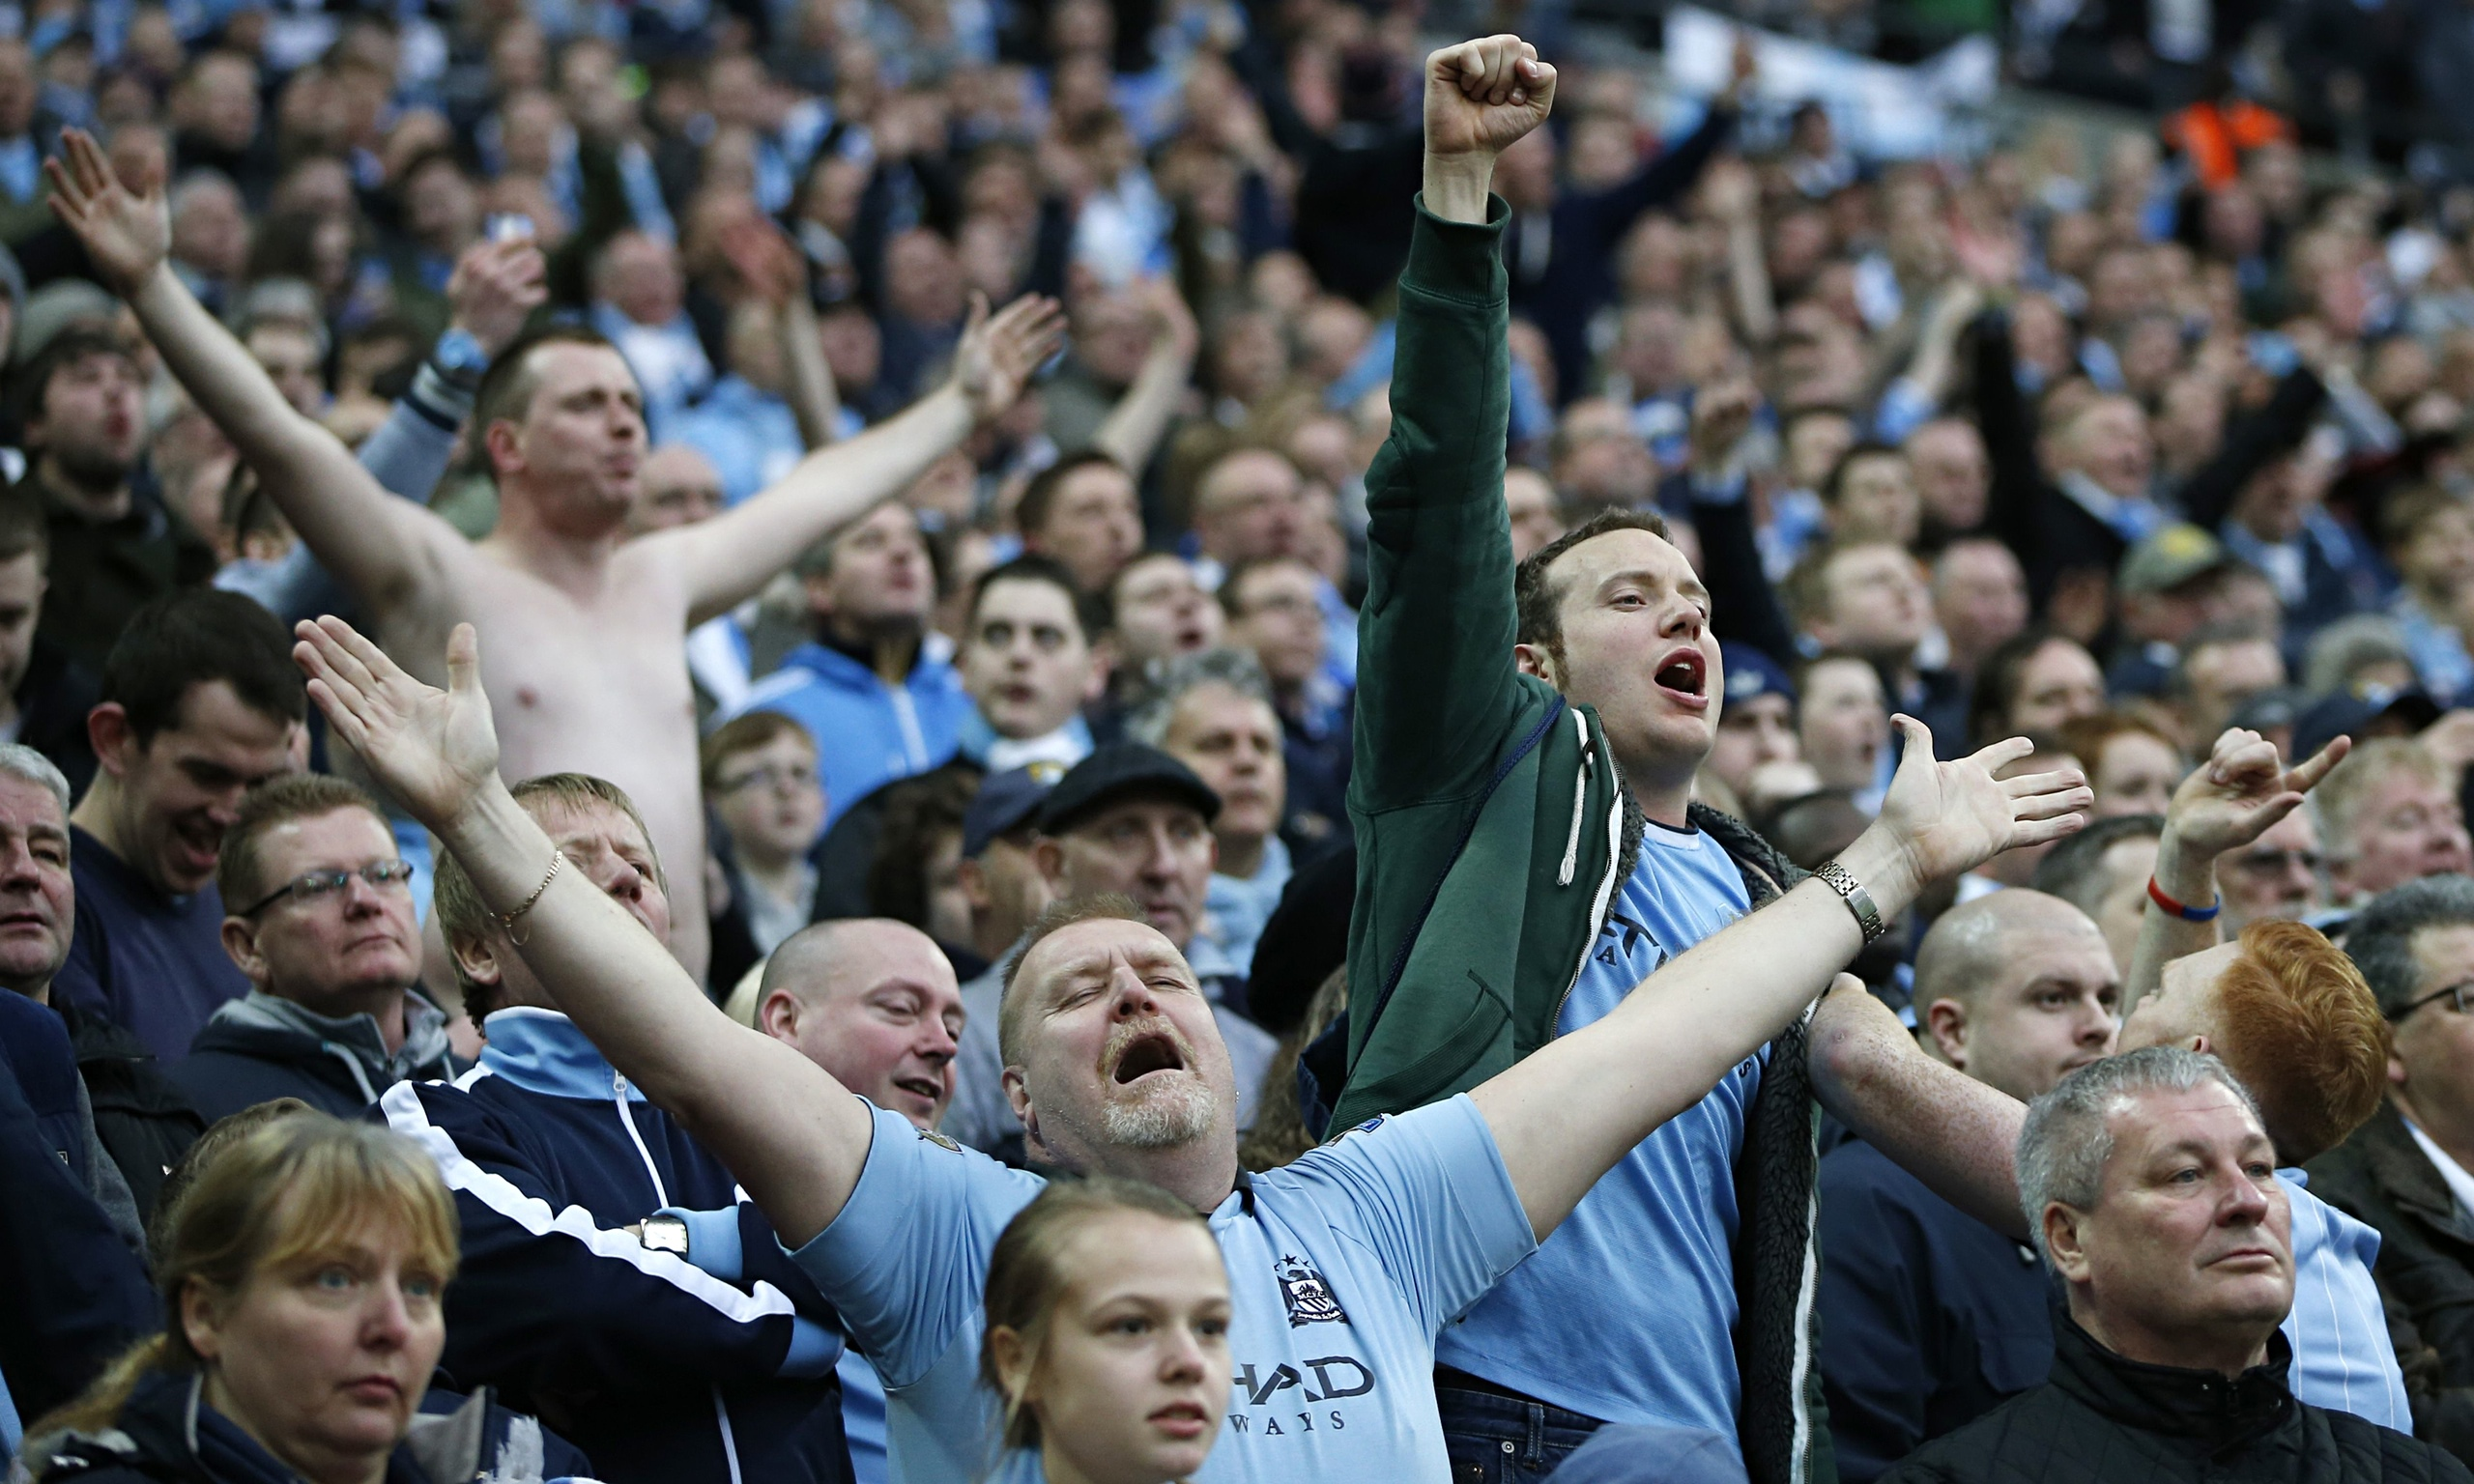 Football Clubs: Manchester City's Wembley Win Over Sunderland Oozed Old